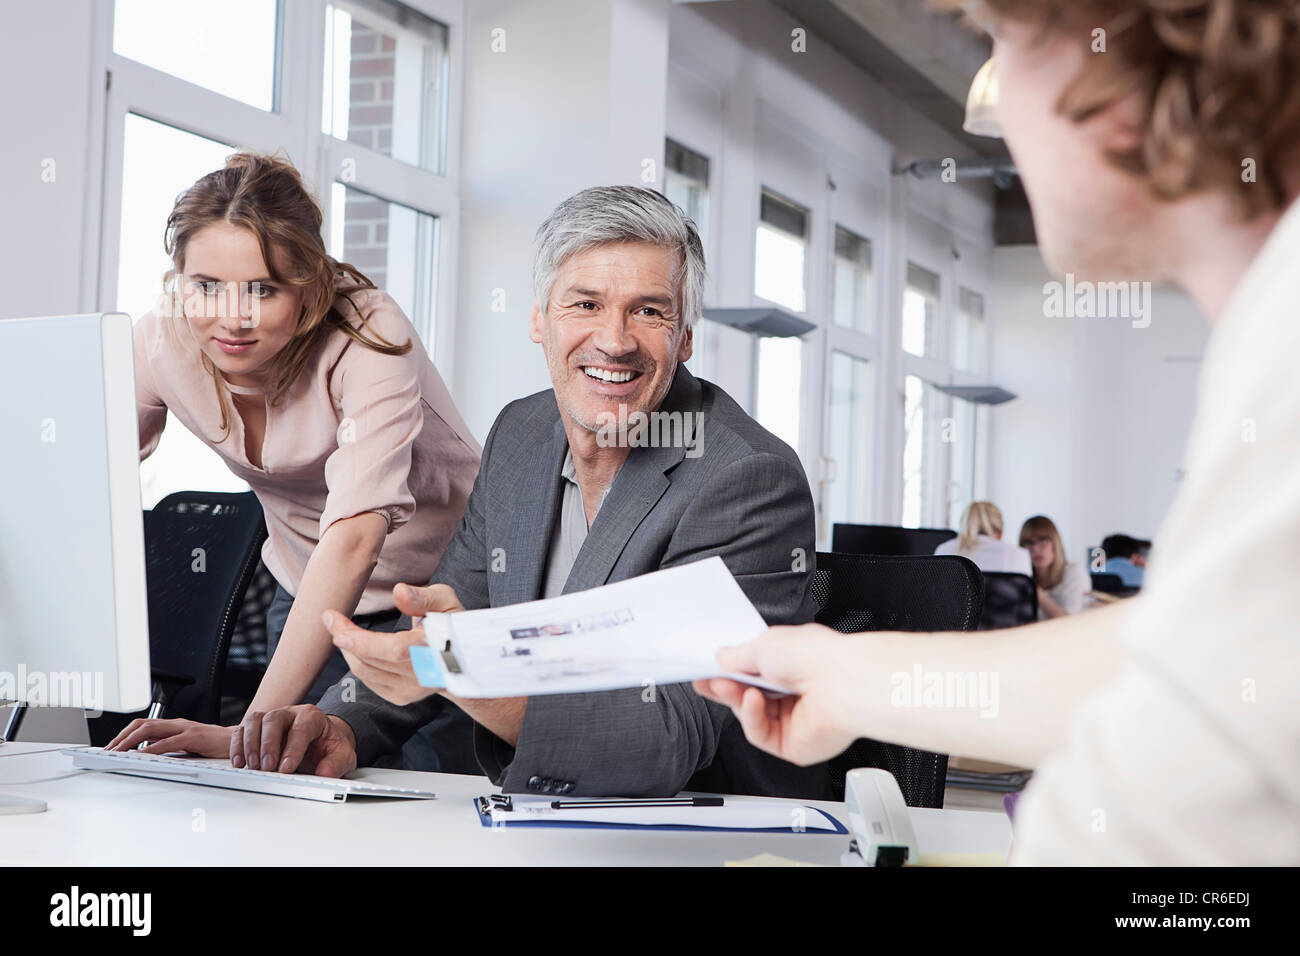 Germany, Bavaria, Munich, men and woman working in office Photo Stock